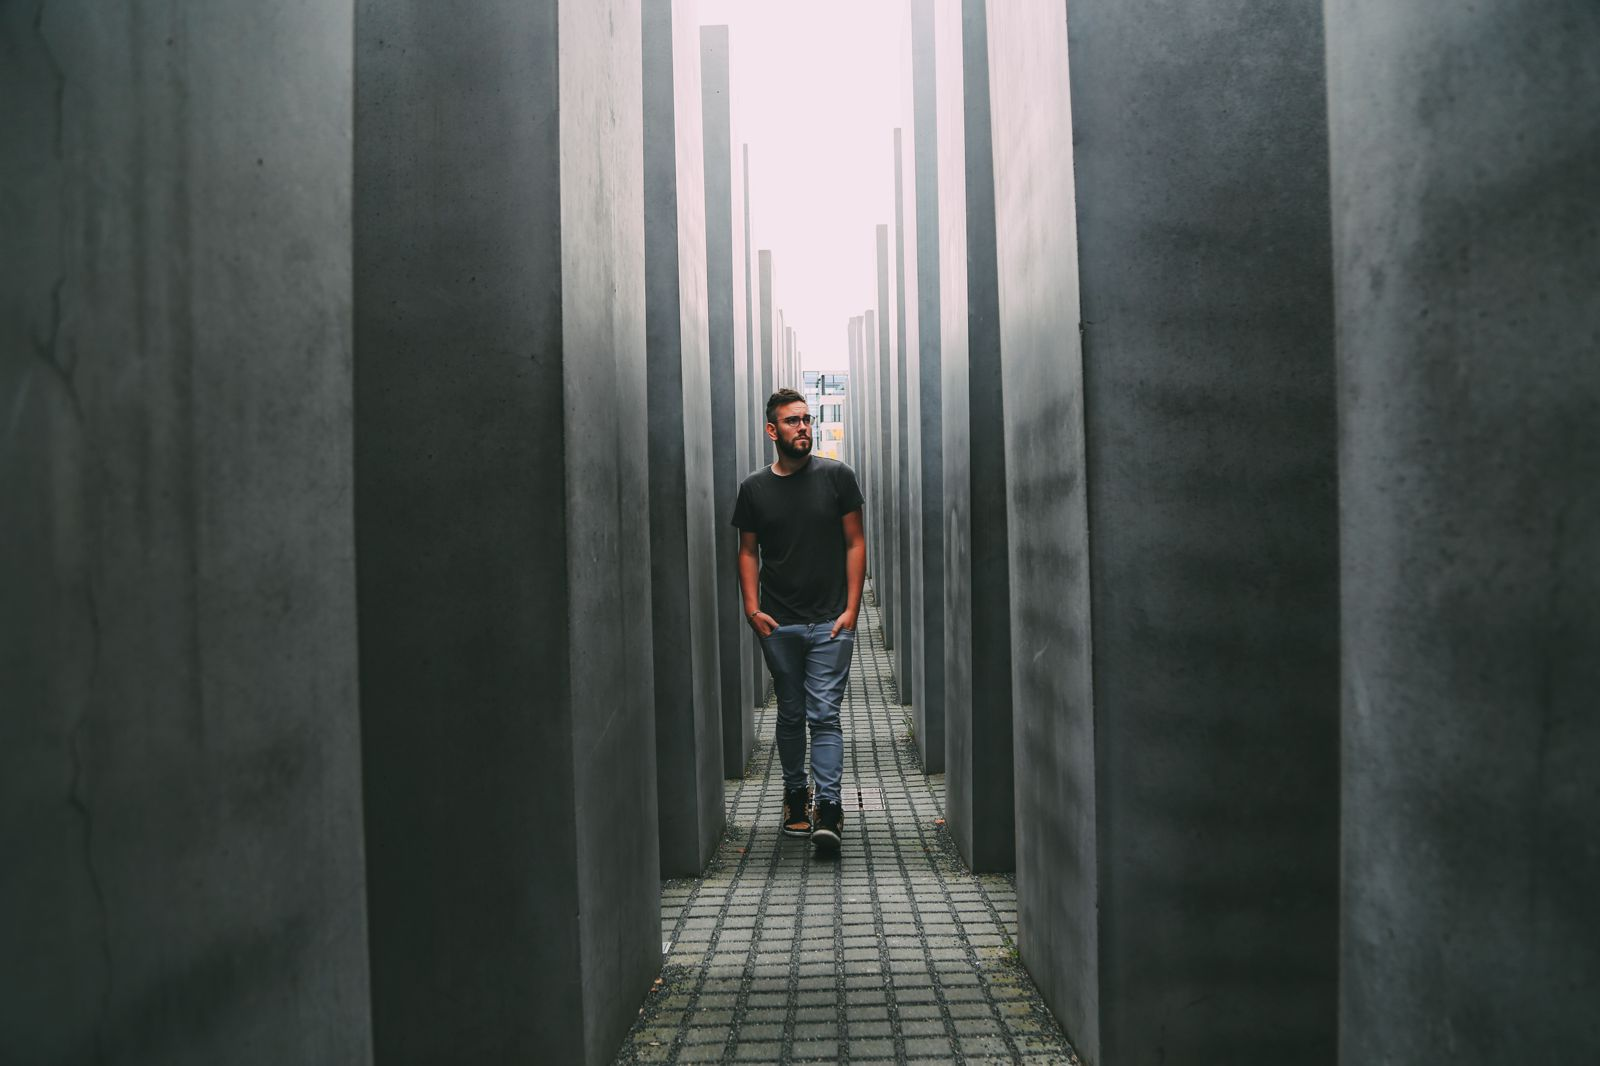 A Memoir To The Fallen - The Holocaust Memorial Also known as the Memorial to the Murdered Jews of Europe (8)